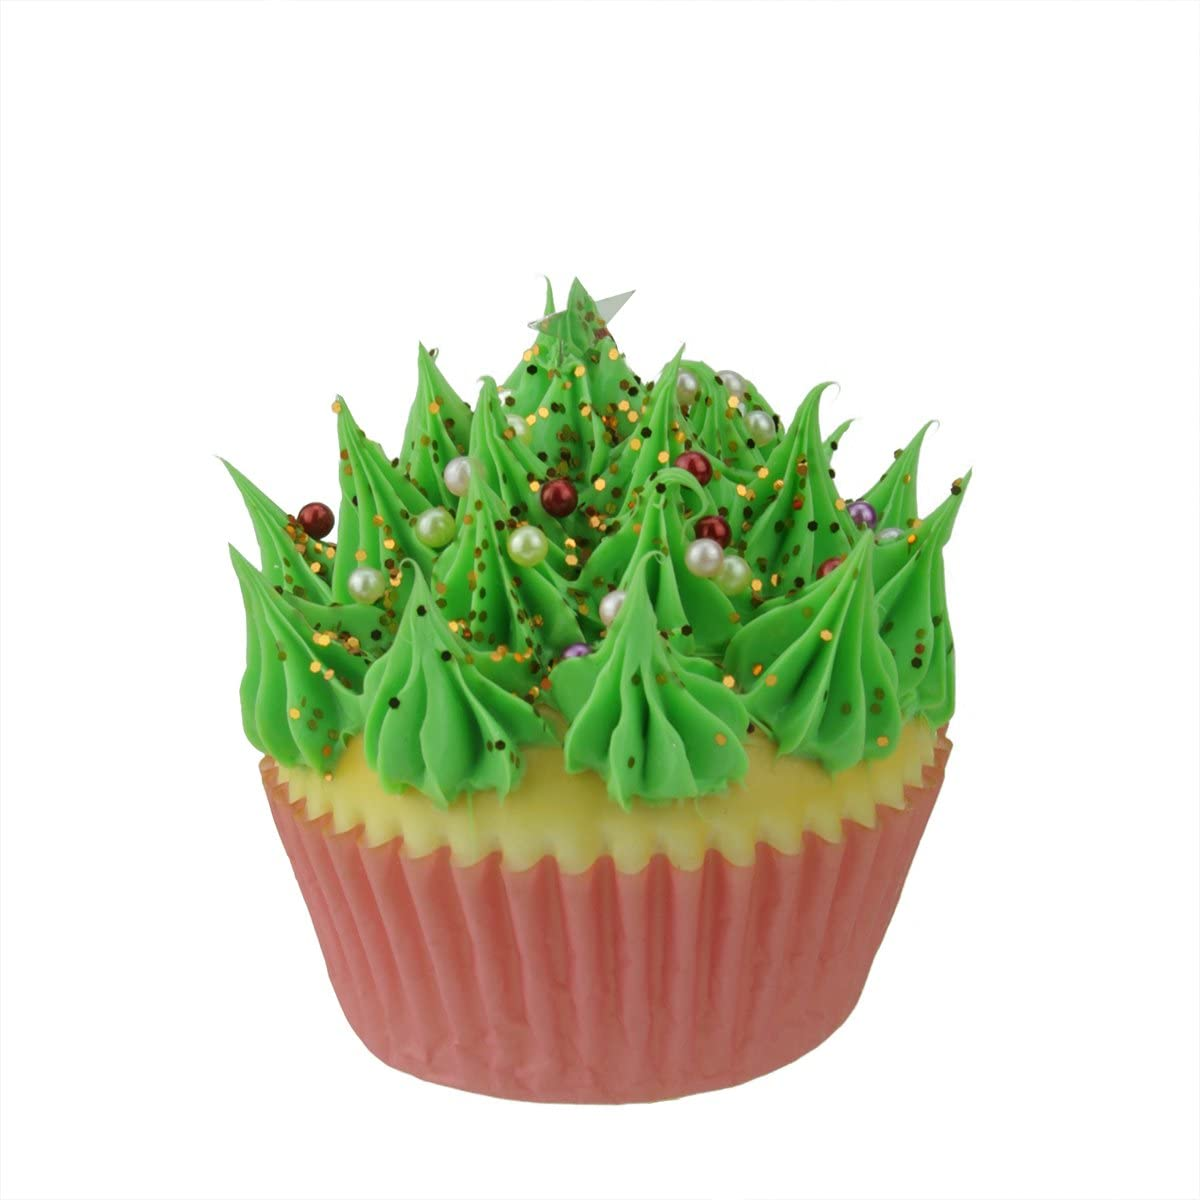 """Kurt Adler 3"""" Cupcake Heaven Green Frosted and Topped with Beads and Glitter Sweet Dessert Christmas Ornament"""